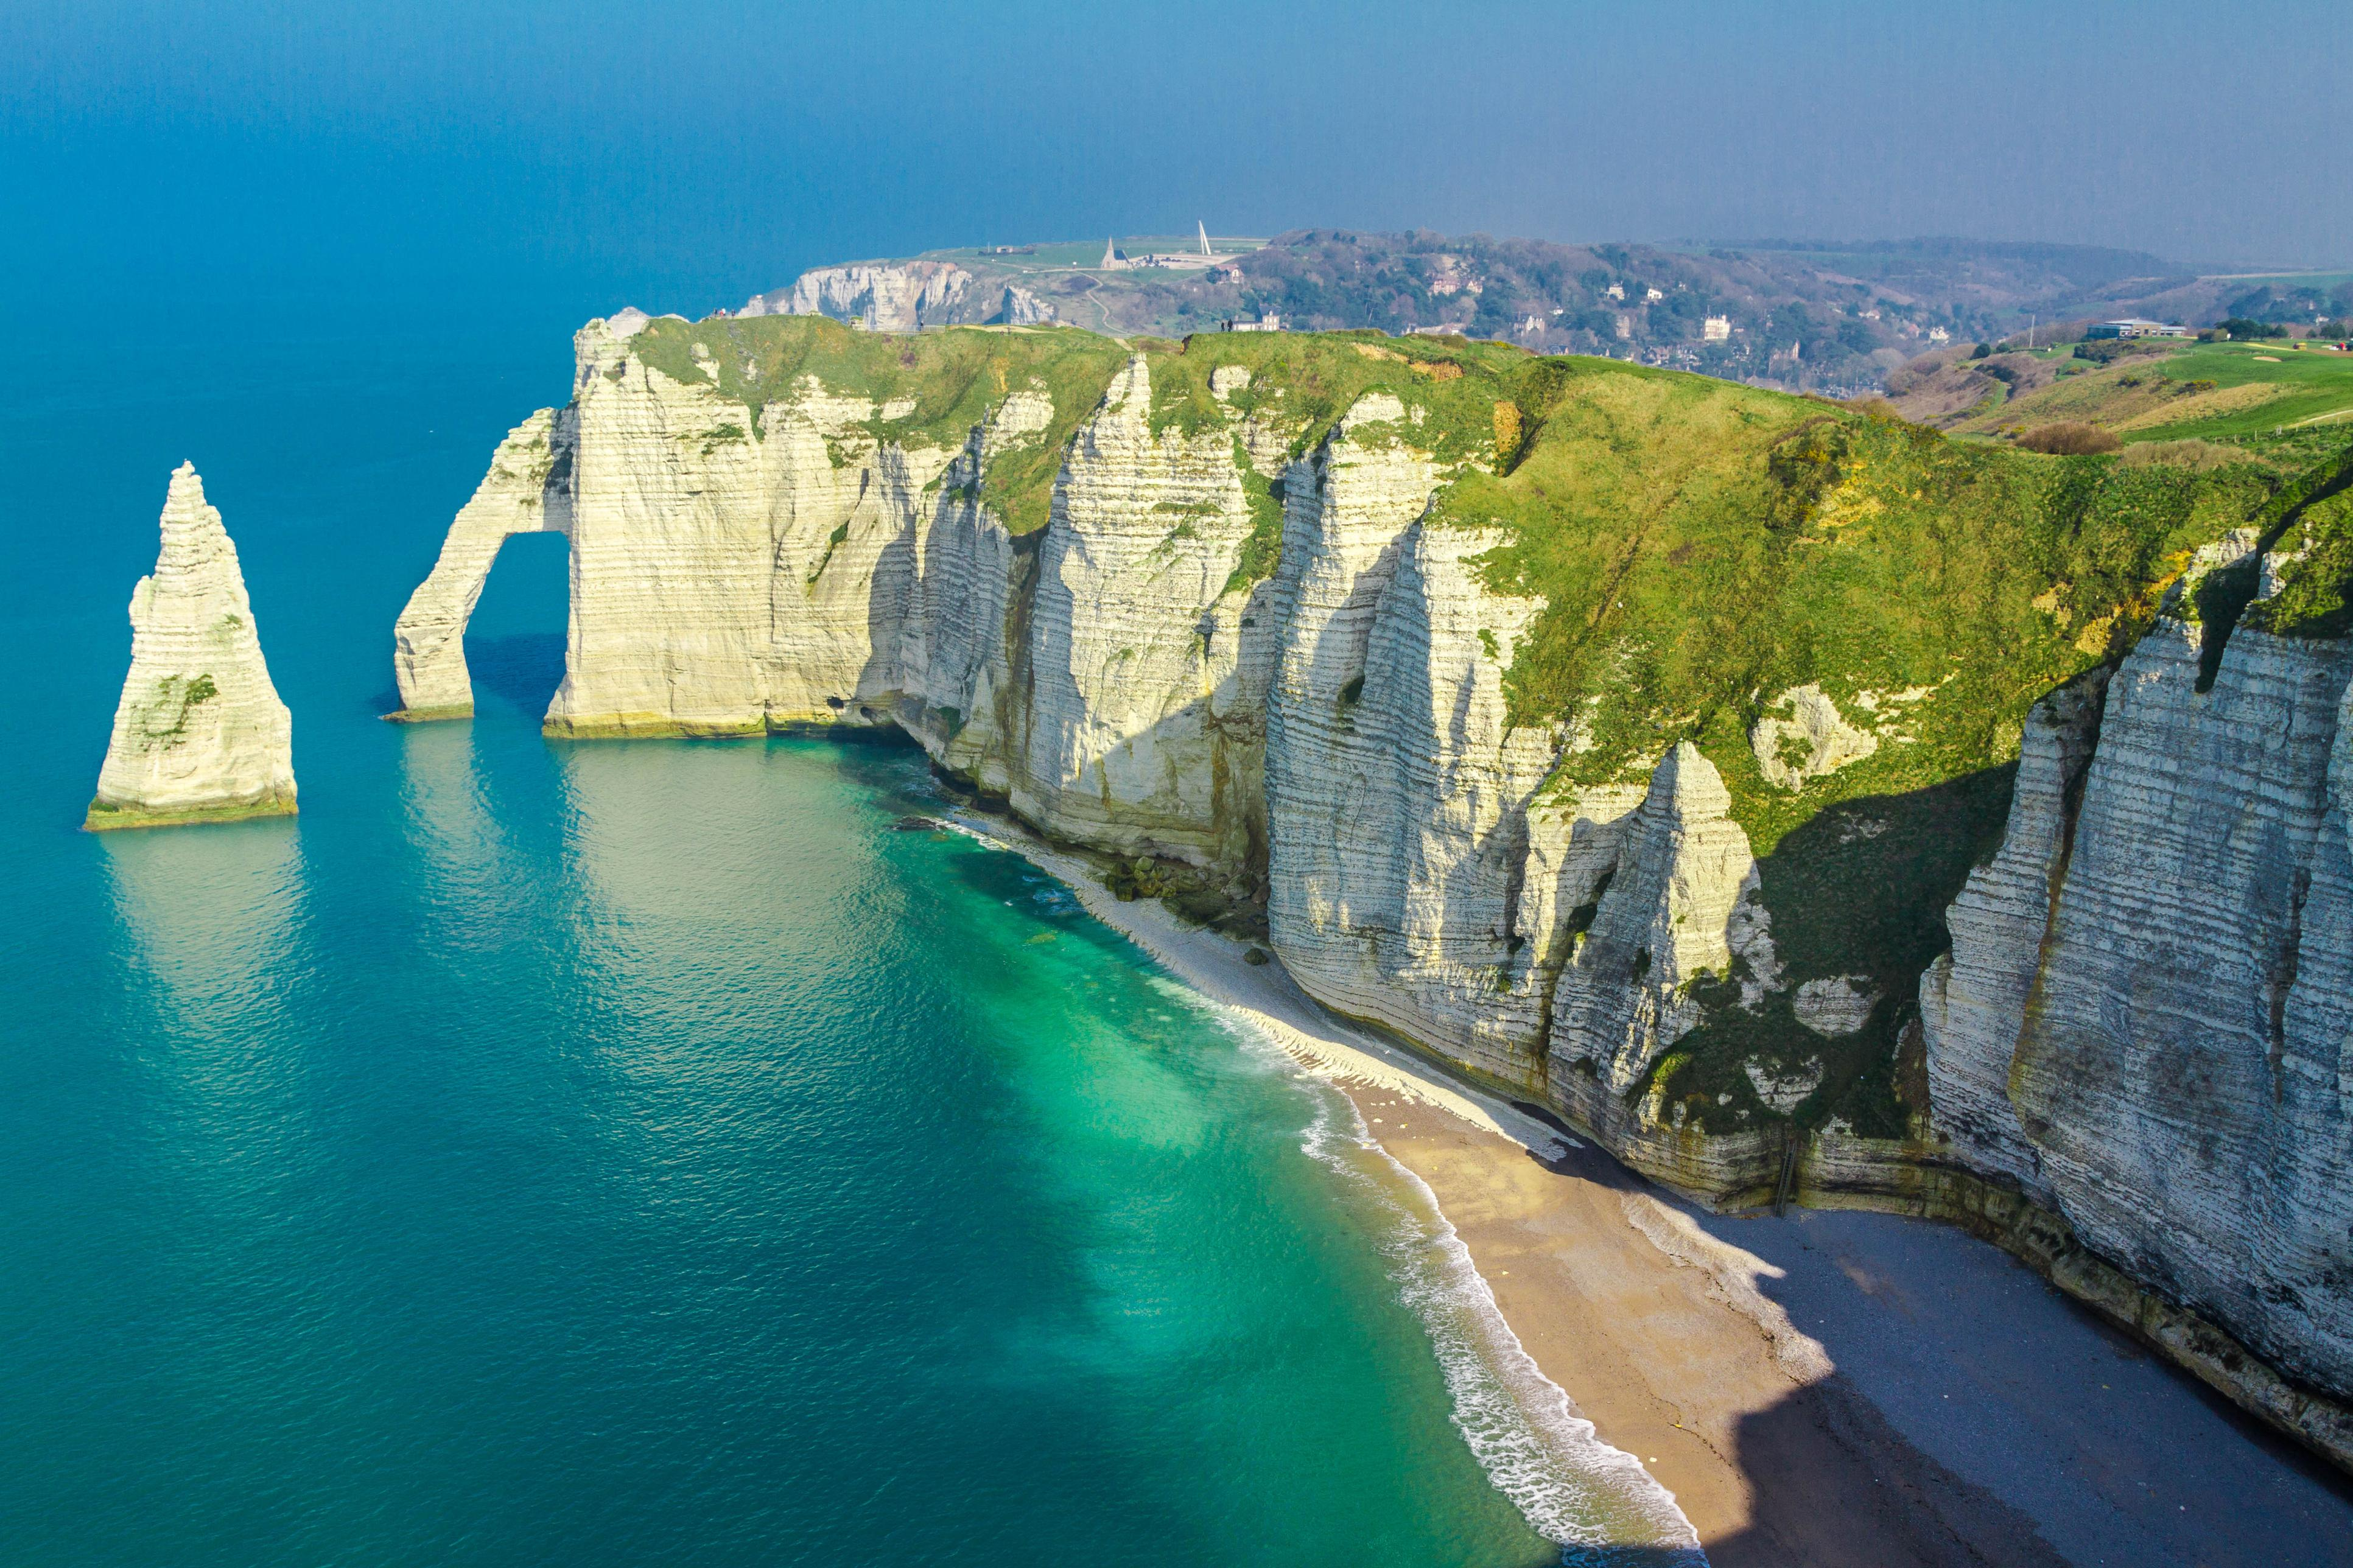 The 10 Best Normandy Tours Amp Trips 2018 2019 With 53